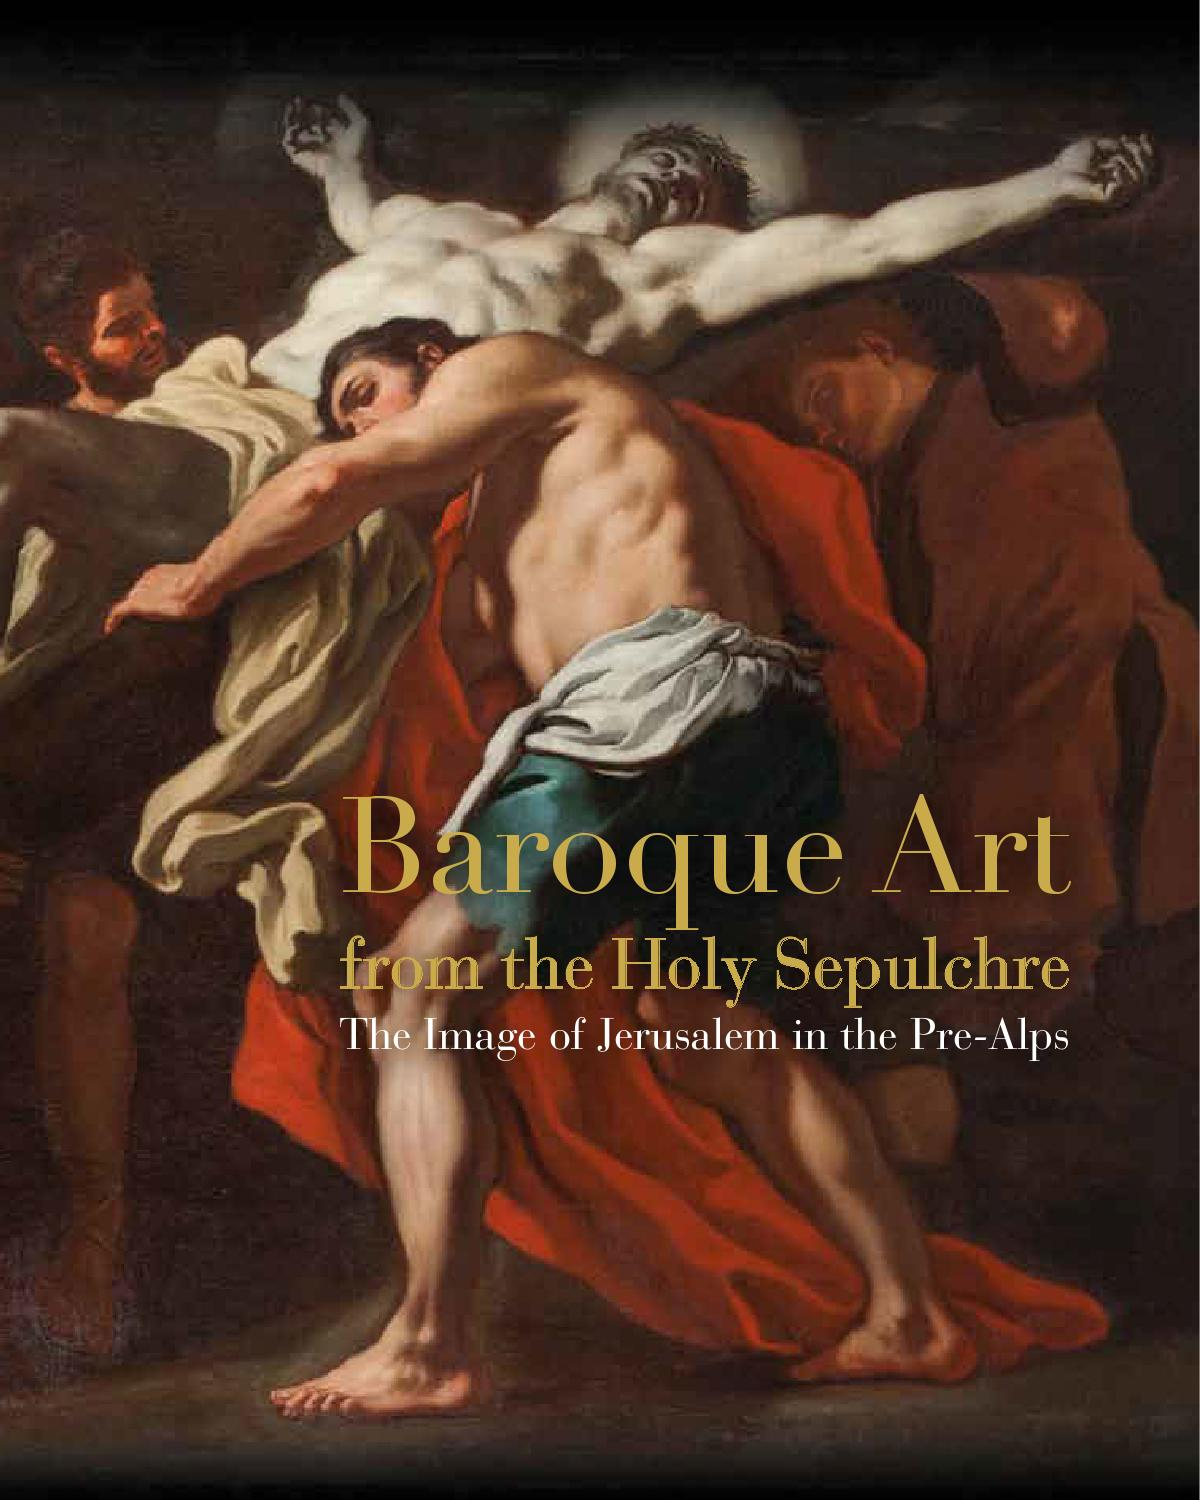 renaissance and baroque essay Both the renaissance and baroque represent major periods in art history in terms of painting, visual art, architecture, and music various artists whose works still influence modern day art, principles, and philosophies graced this period this essay describes the influence of the renaissance on the.